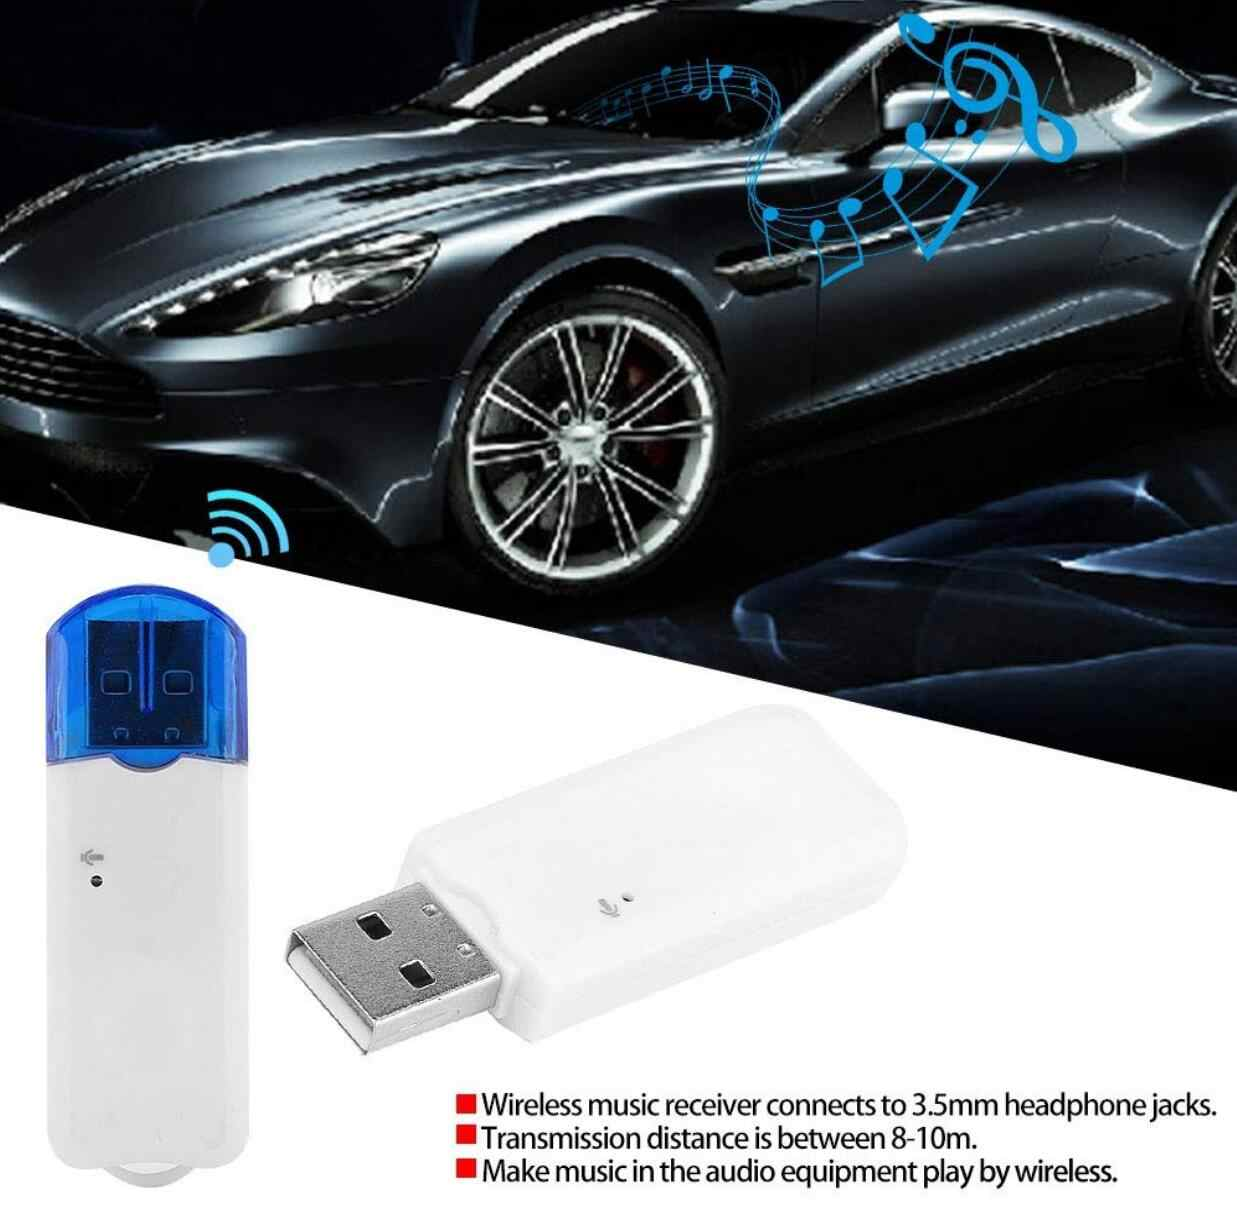 Usb Bluetooth Audio Penerima Nirkabel Adapter untuk Peugeot 3008 Hyundai I30 Skoda H7 Volkswagen Golf 4 Ford Focus 3 Toyota auris